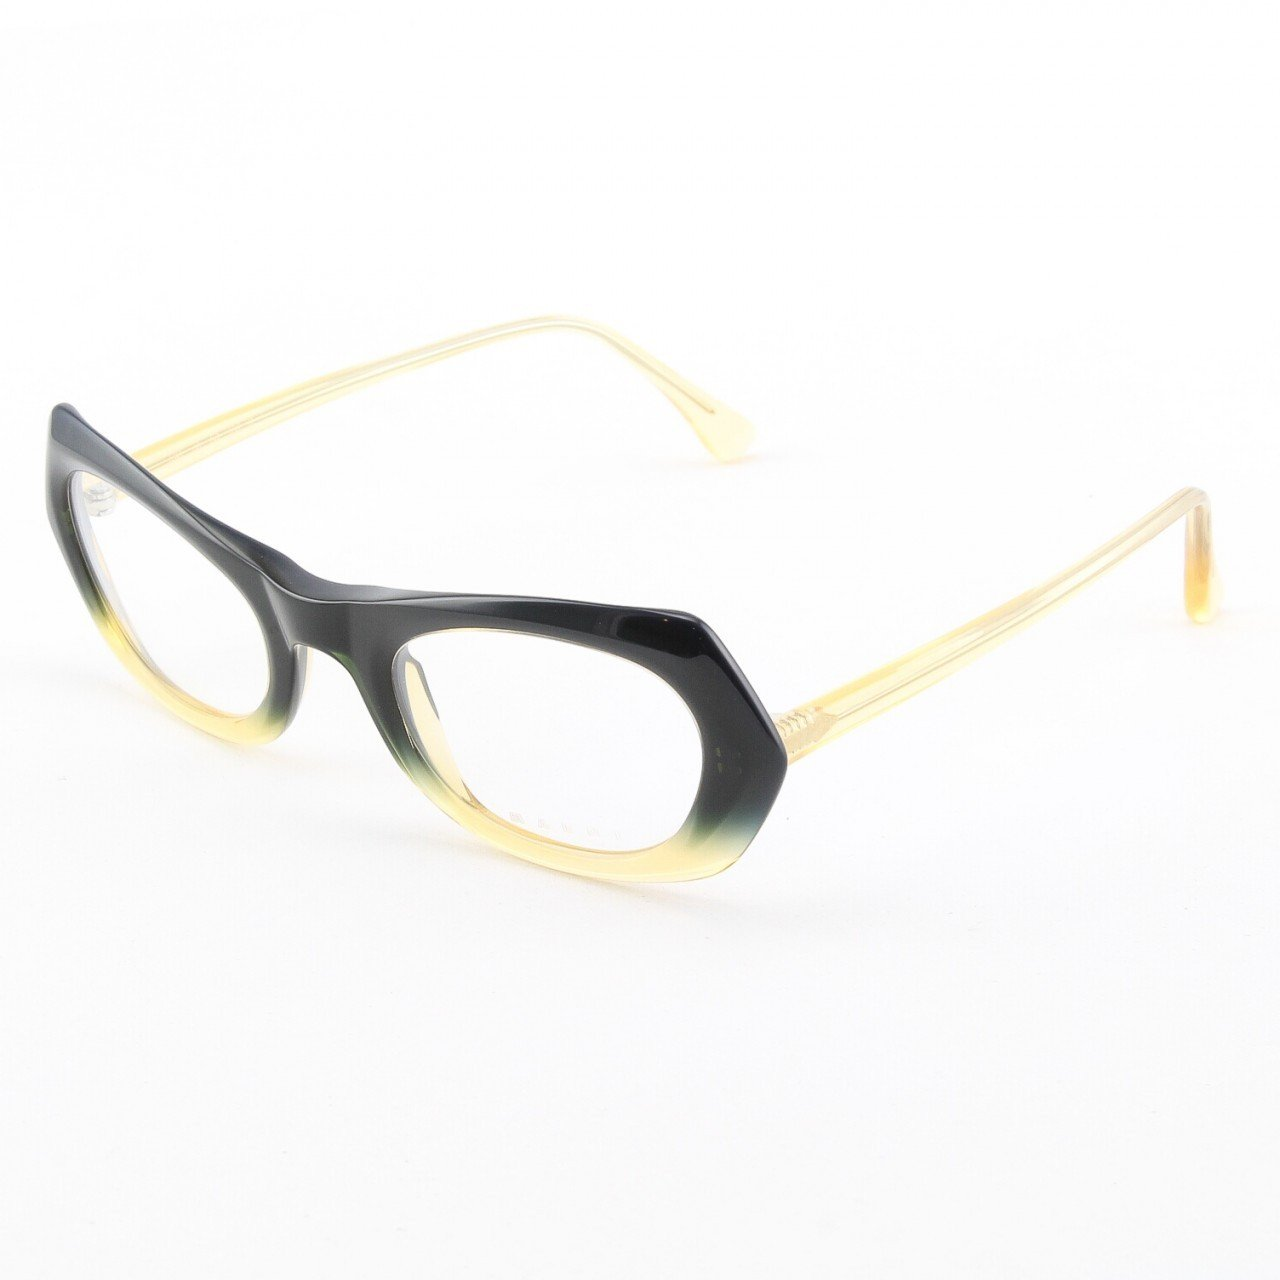 Marni MA680S Eyeglasses Col. 08 Midnight Navy to Crystal Light Yellow with Clear Lenses